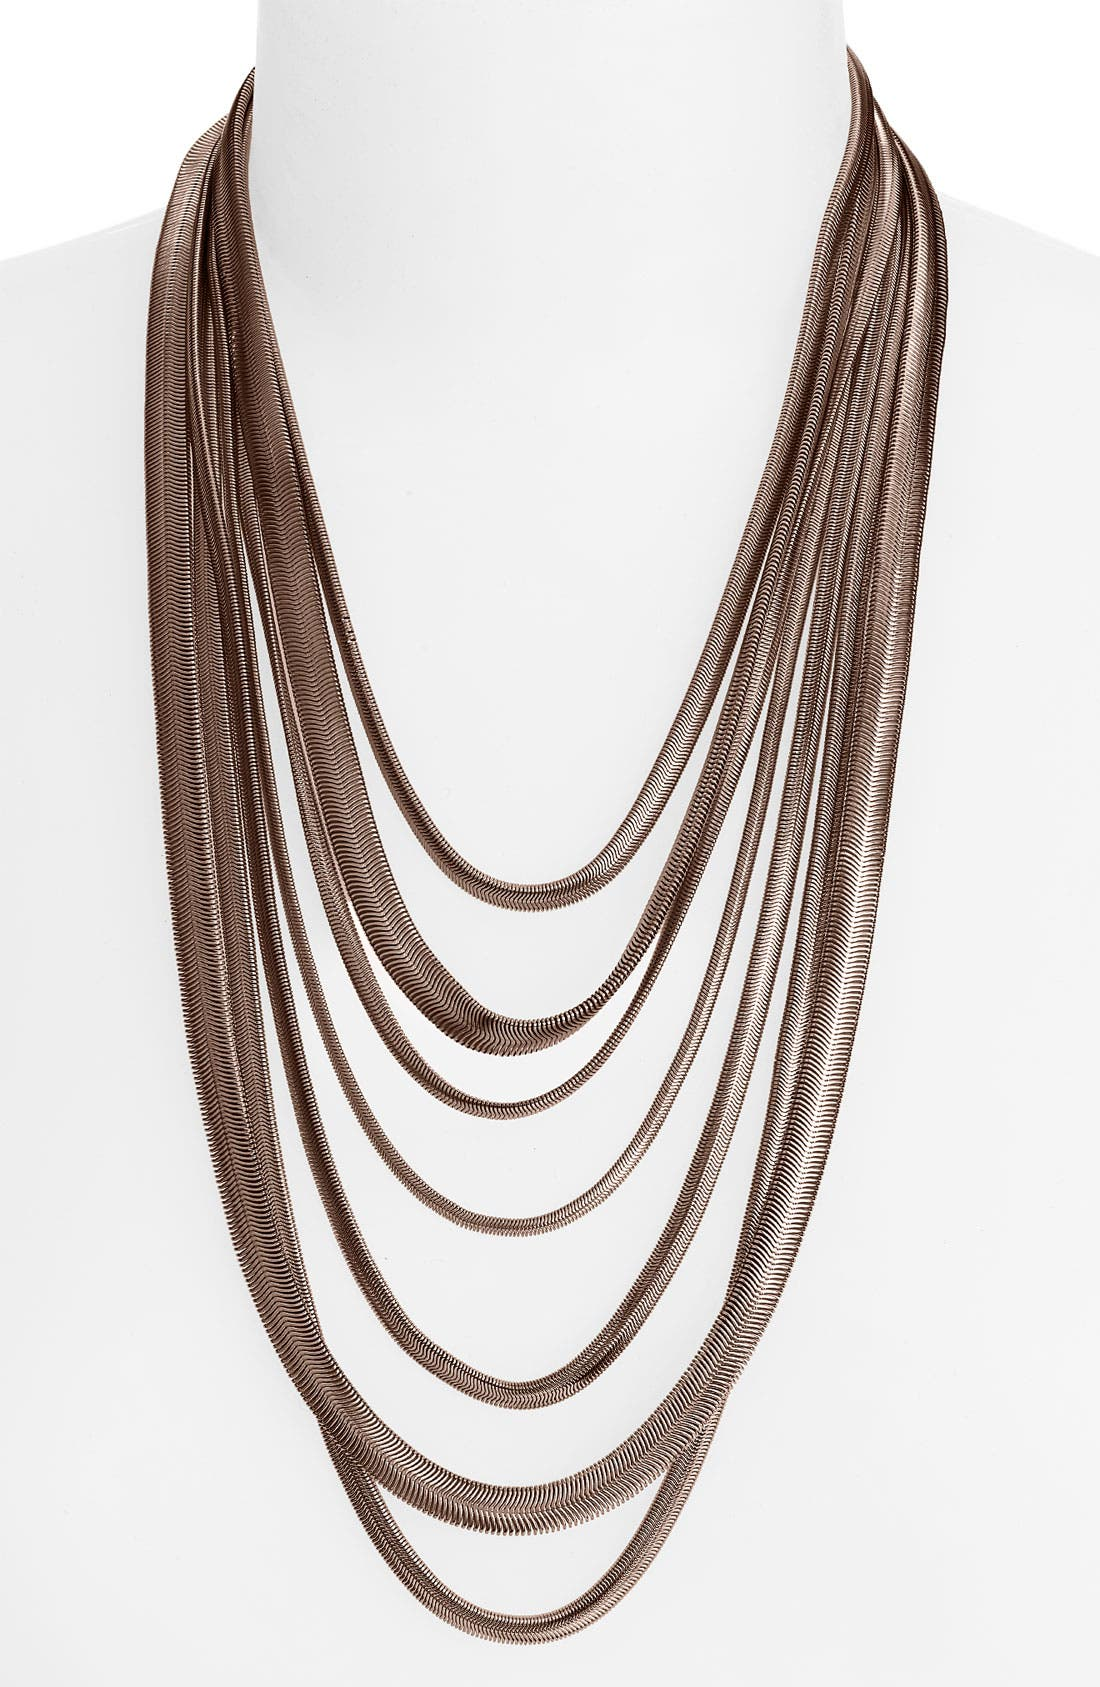 NORDSTROM Multi Row Chain Necklace, Main, color, 200